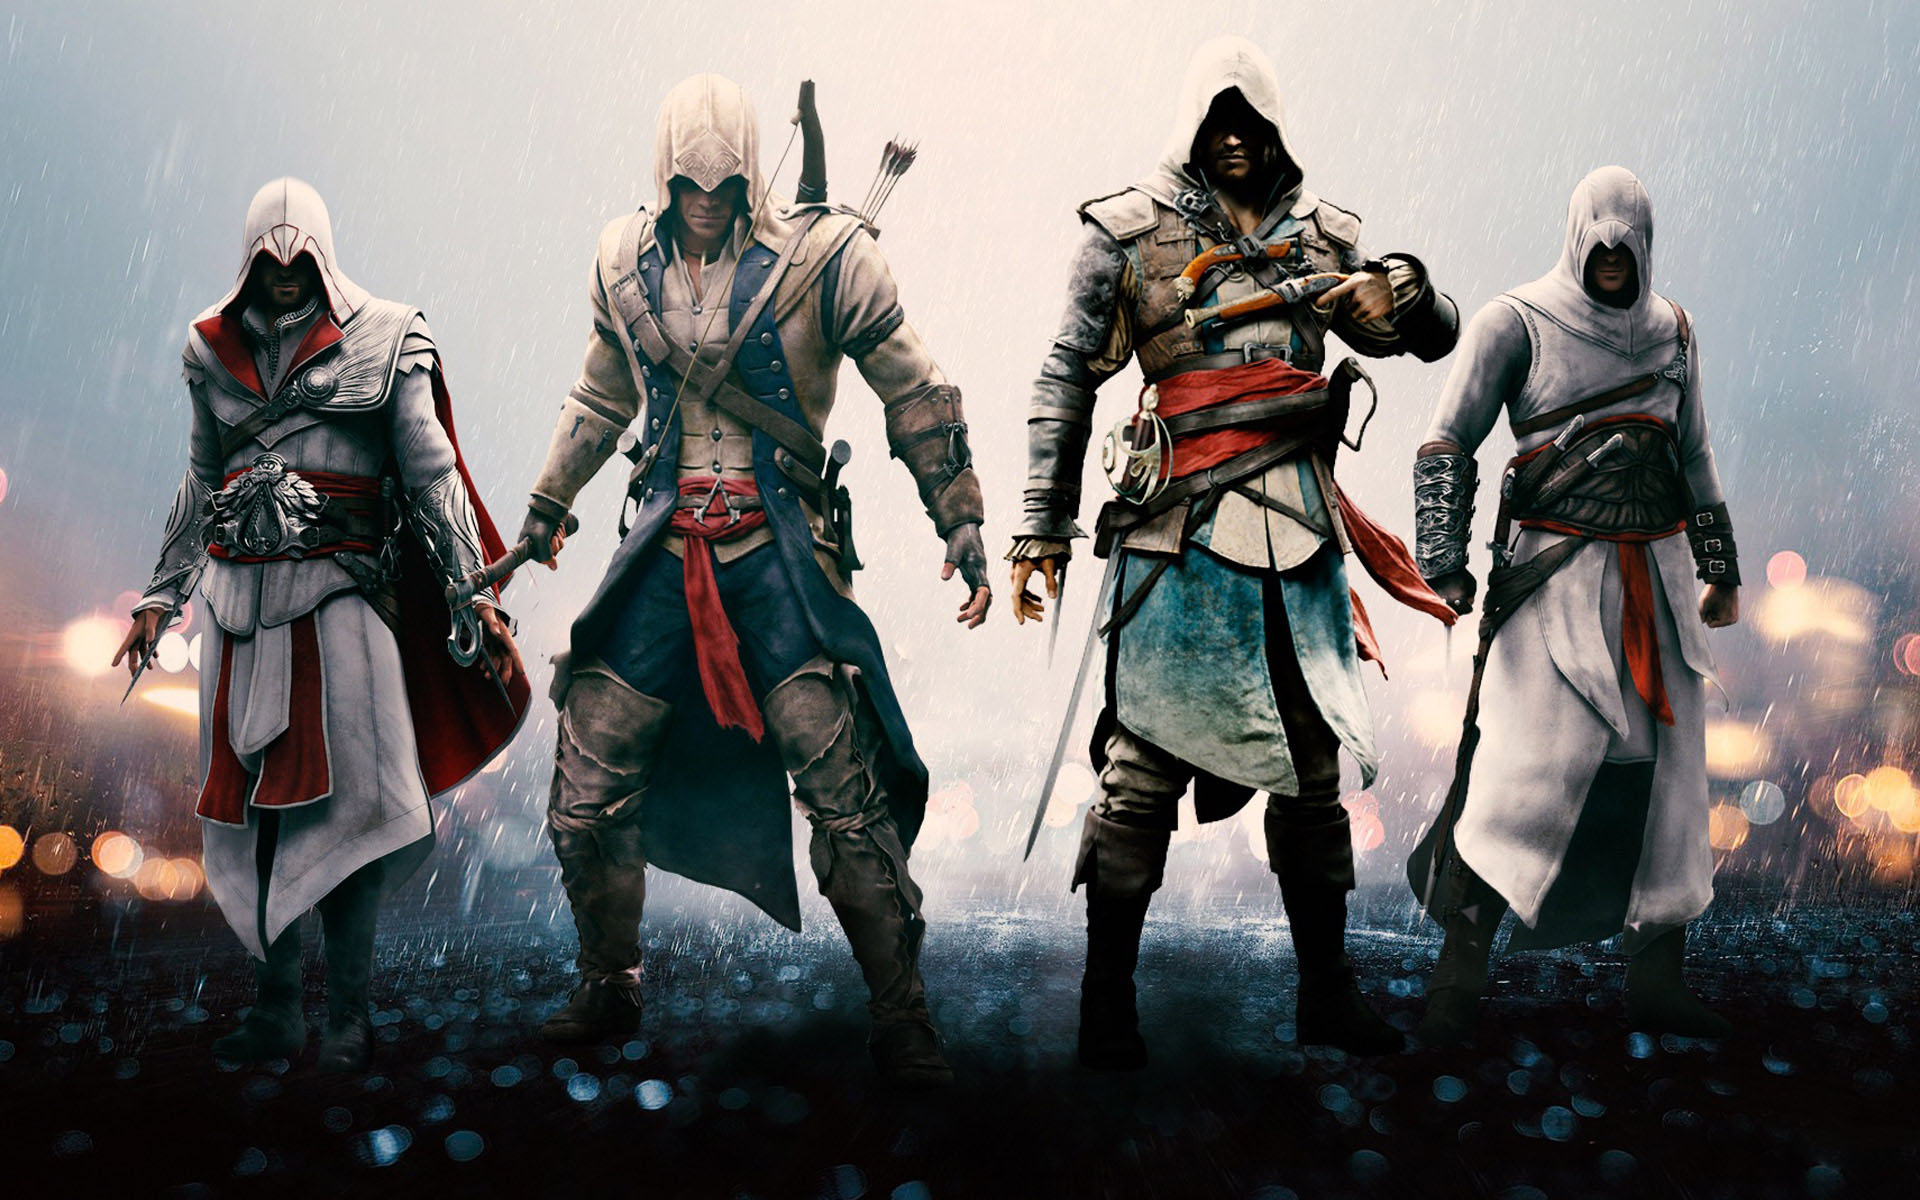 Free Download Assassins Creed Desktop Background 40 Best